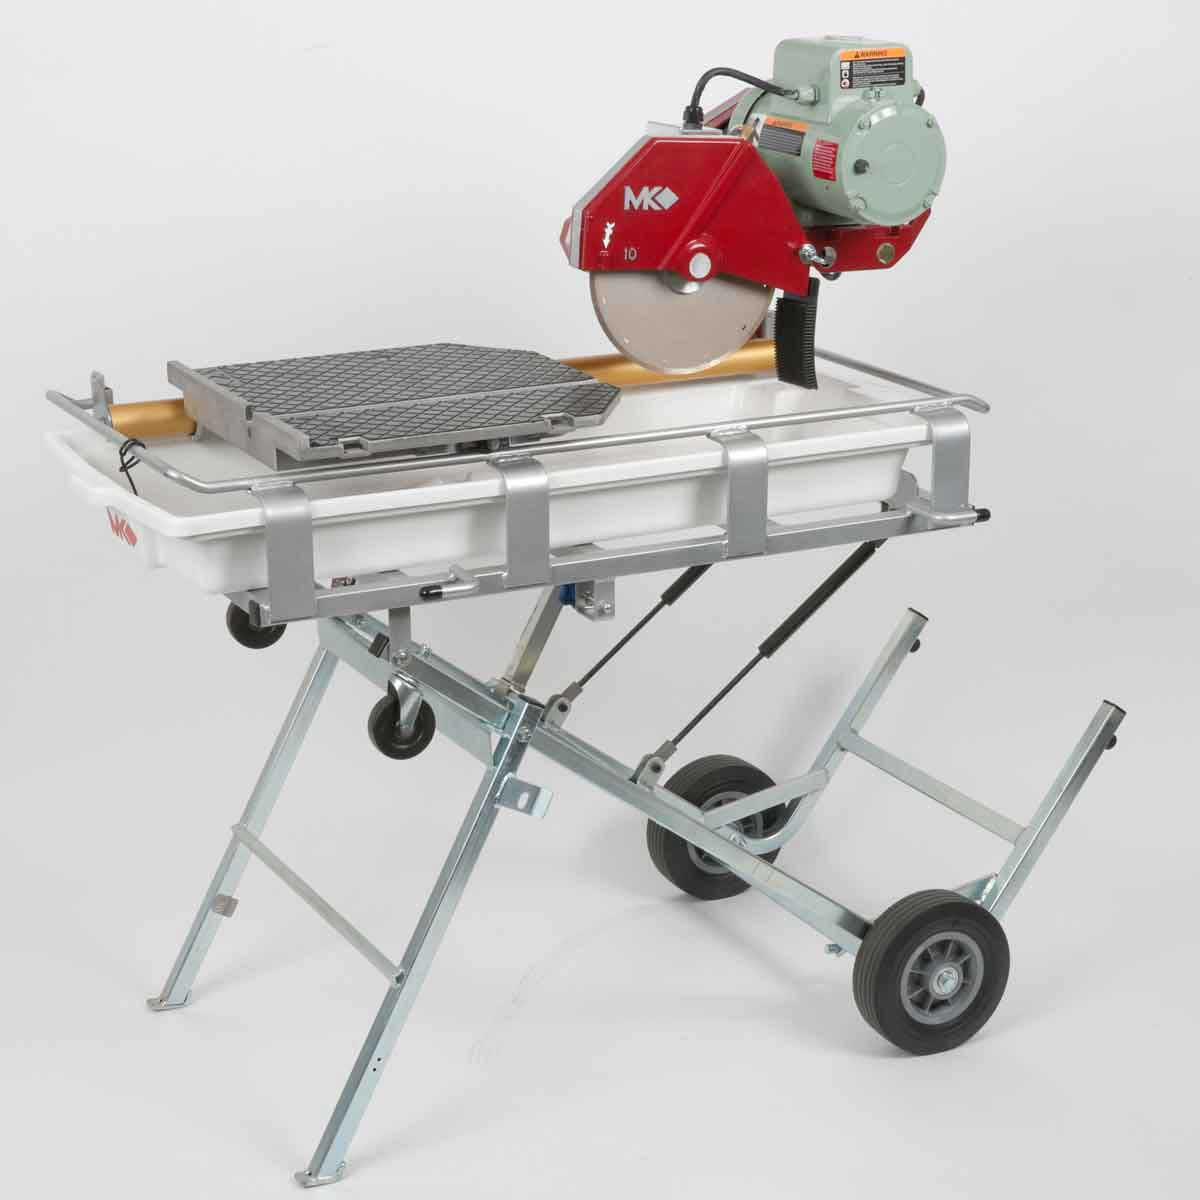 Mk 101 Pro24 Jcs Tile Saw With Stand 2